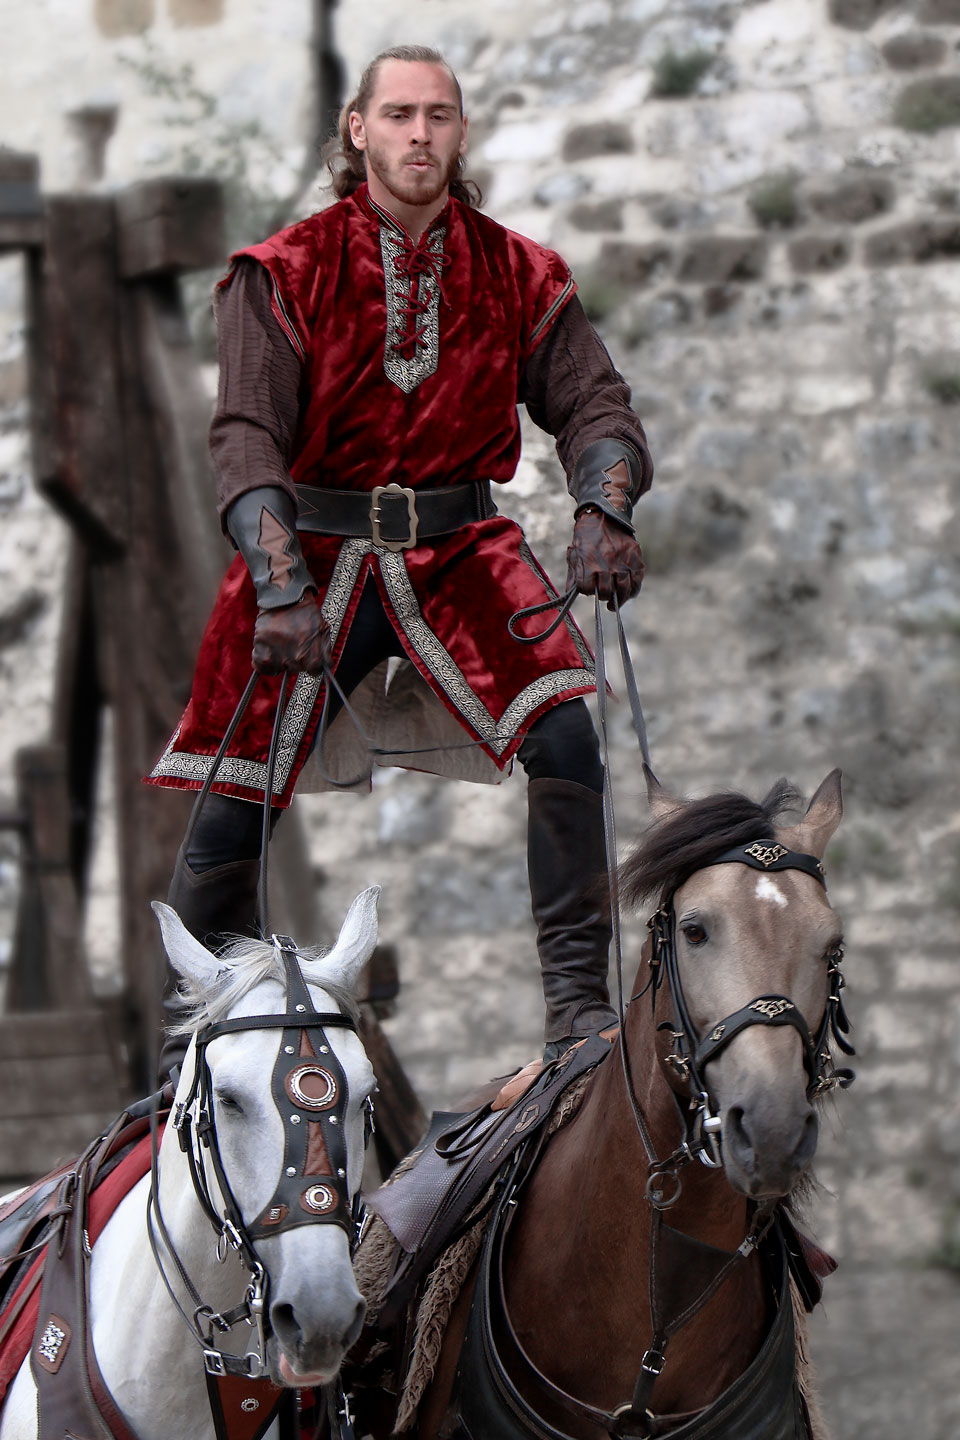 French Photographer Art Photography Stunt Knight on a two Horses